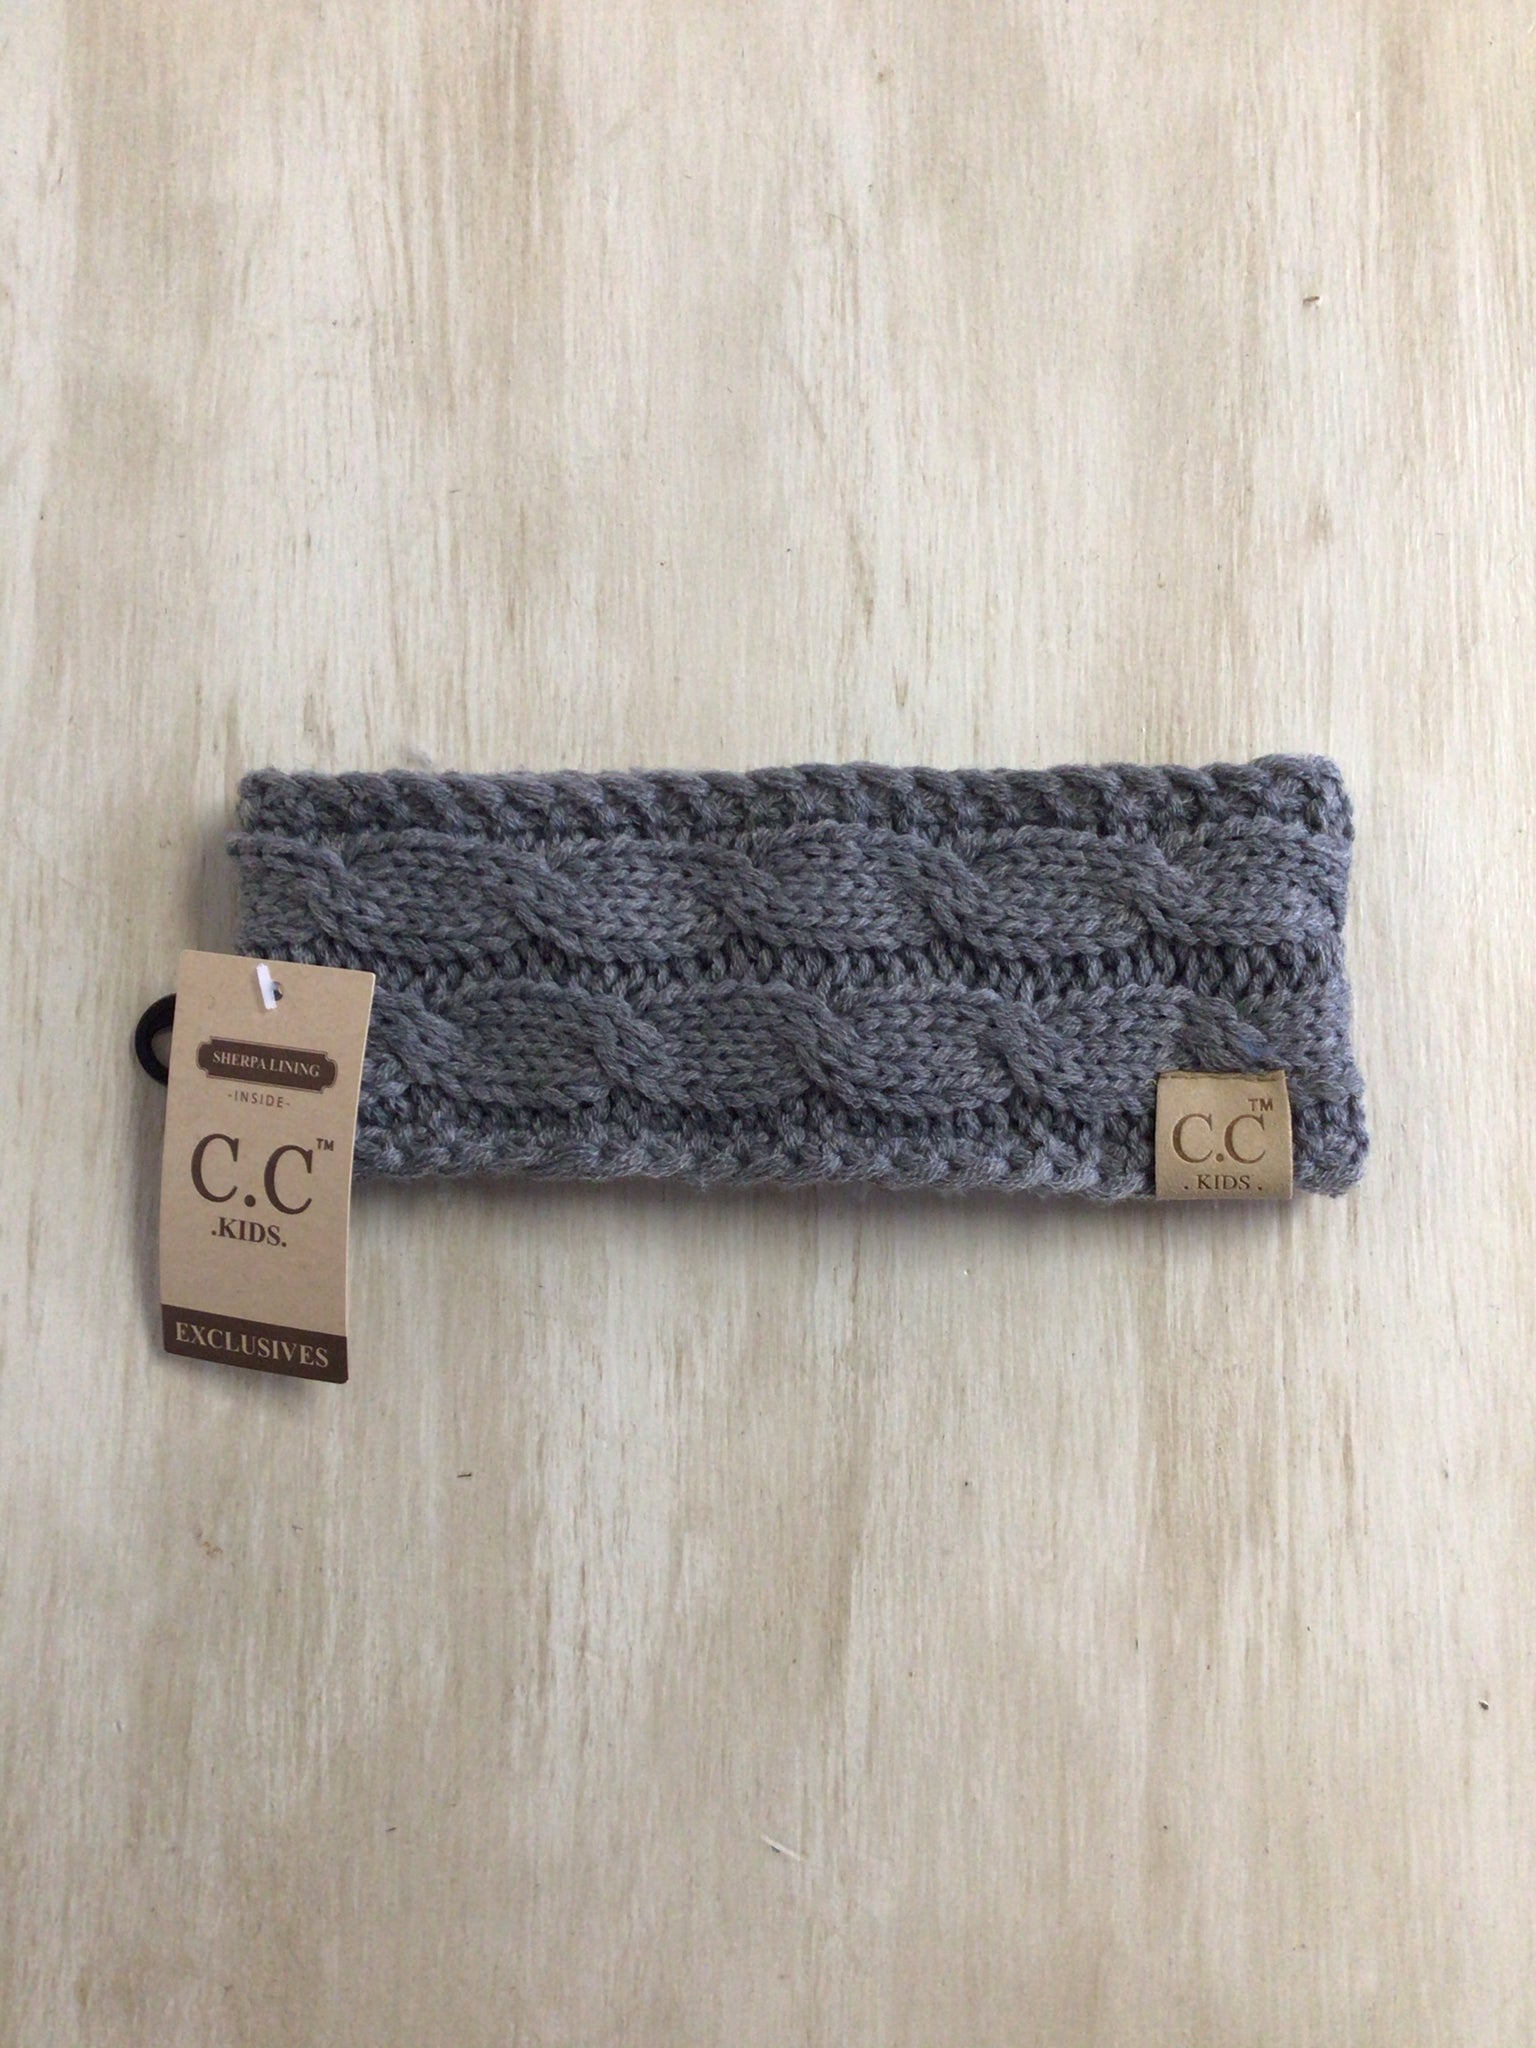 Kids Solid Cable Knit Head Wrap CC Beanie